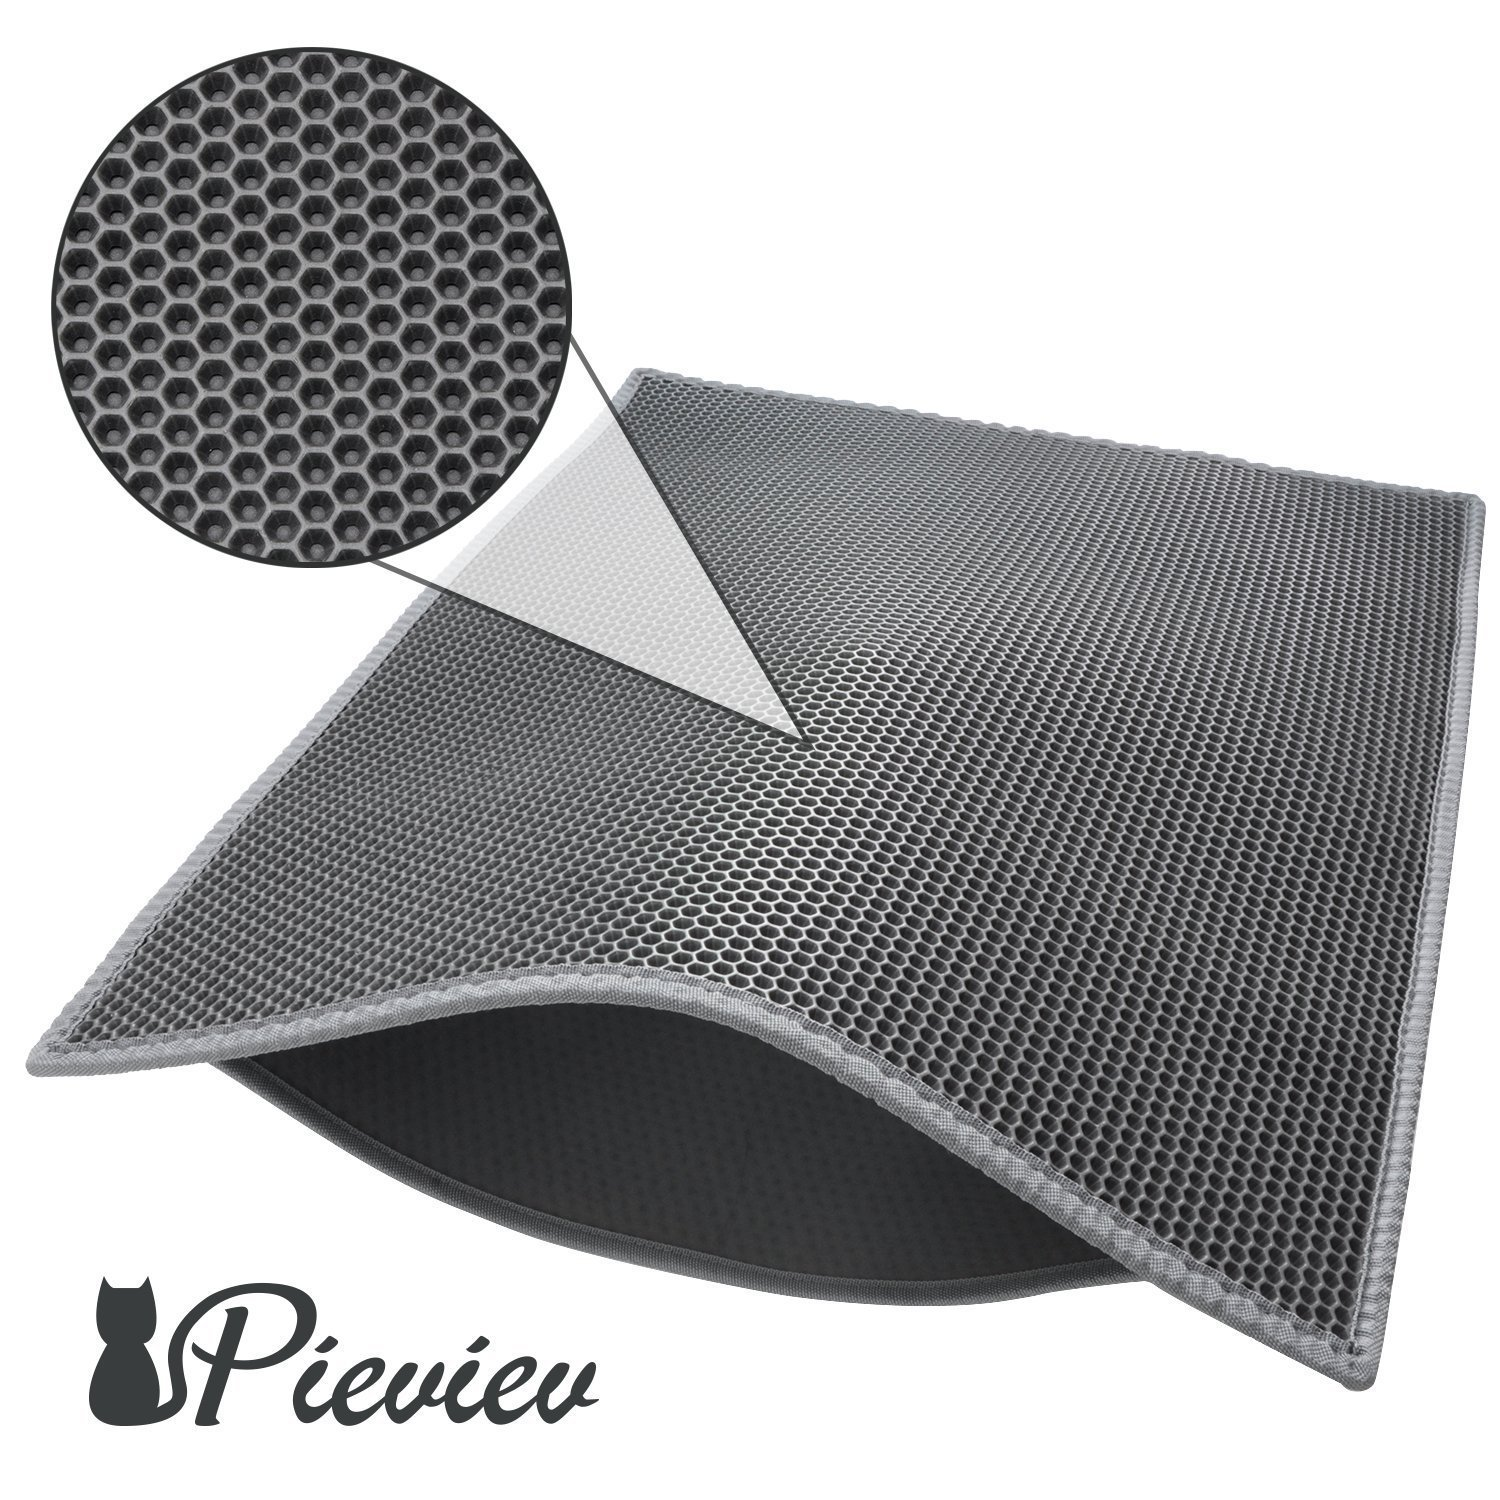 Pieviev Cat Litter Mat Litter Tray Mat of Large Size 30 x 24 Double Layer Honeycomb Large Holes Design Waterproof EVA Material BPA Free Soft on Paws and Washable Black